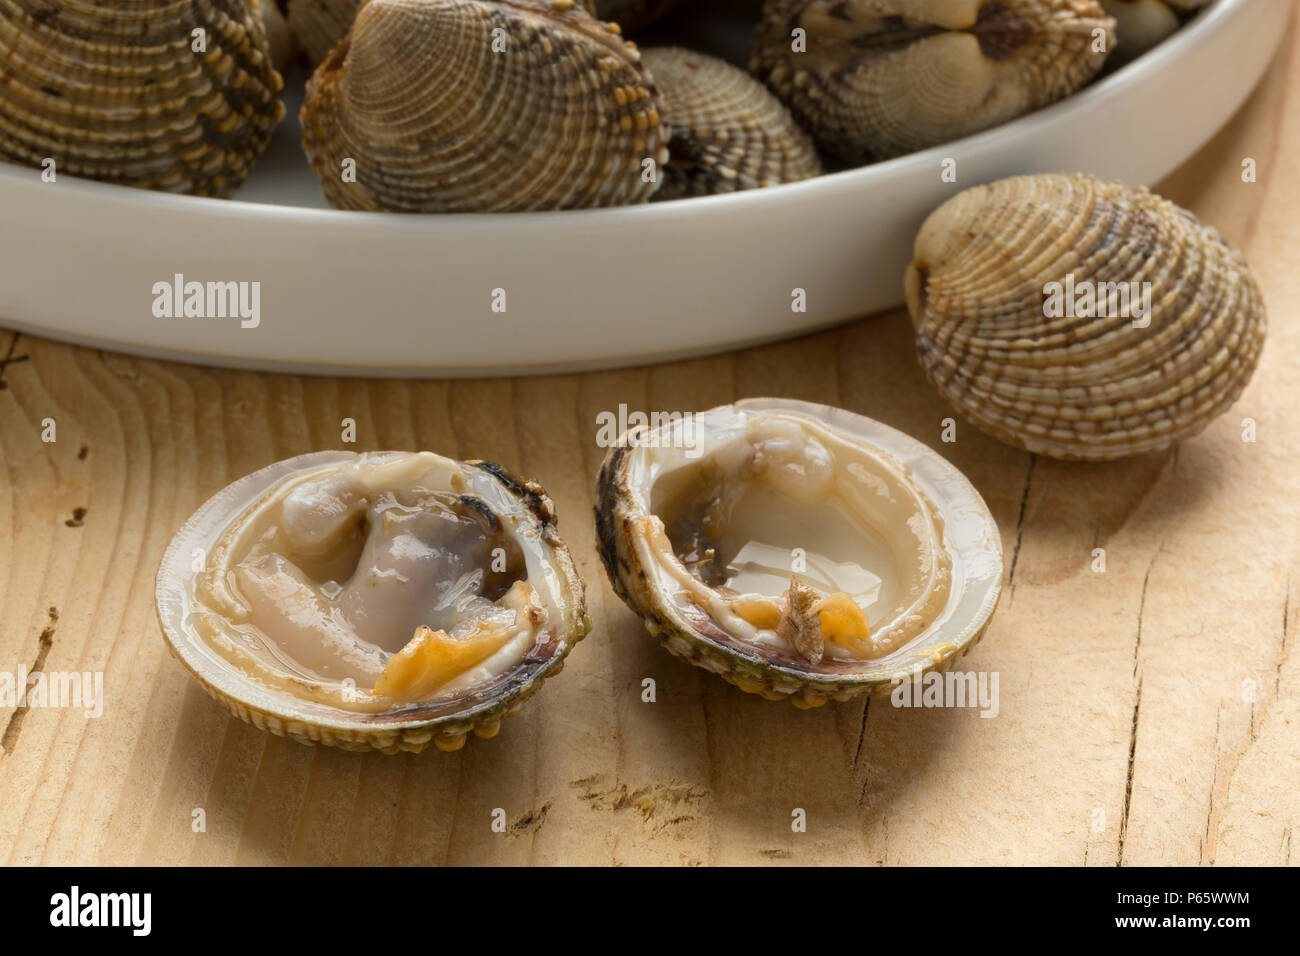 Dish with fresh raw warty venus clams for a meal, one open in front - Stock Image